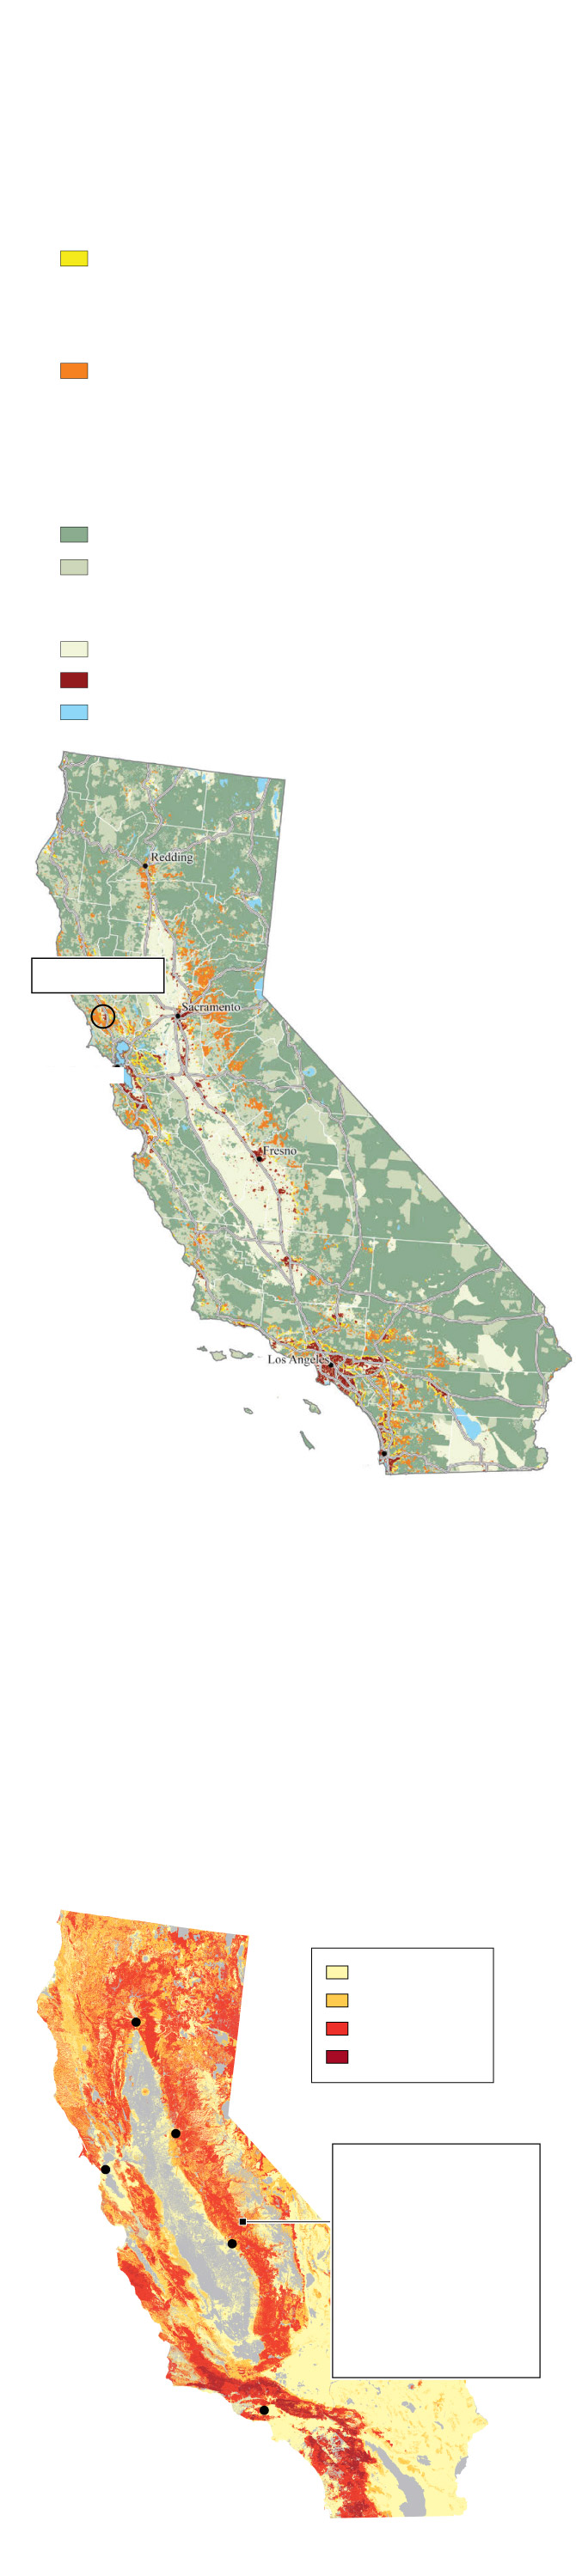 In wildfire prone B C and California urban sprawl and bad planning